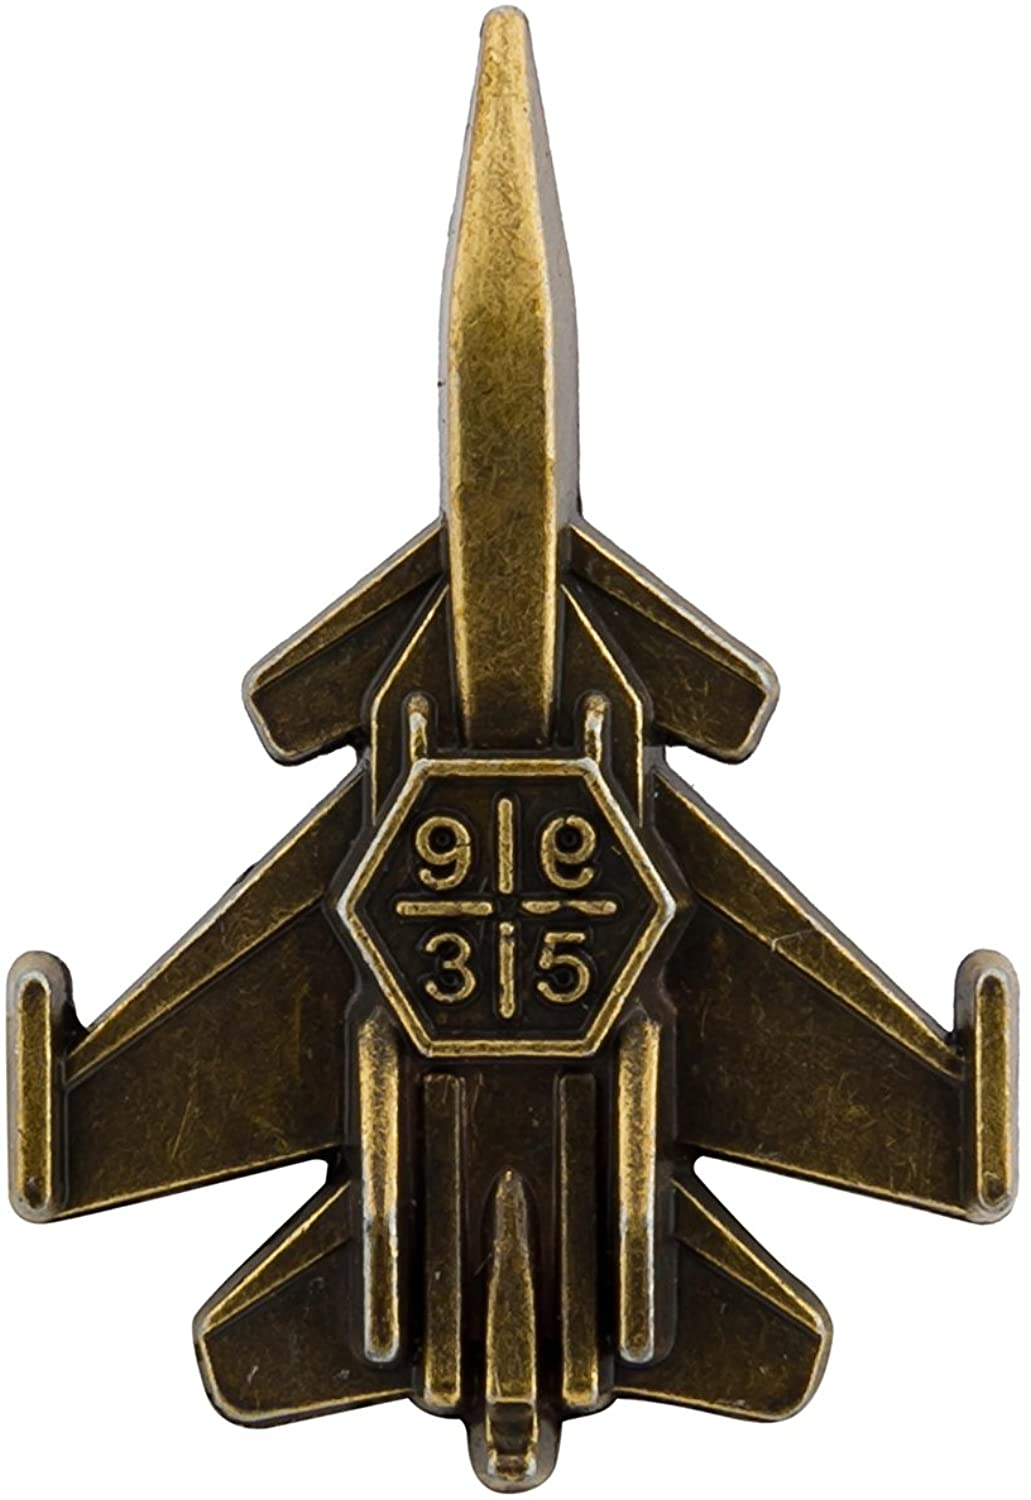 Knighthood Fighter Jet Aircraft,Airplane Bronze Lapel Pin Badge Coat Suit Wedding Gift Party Shirt Collar Accessories Brooch for Men